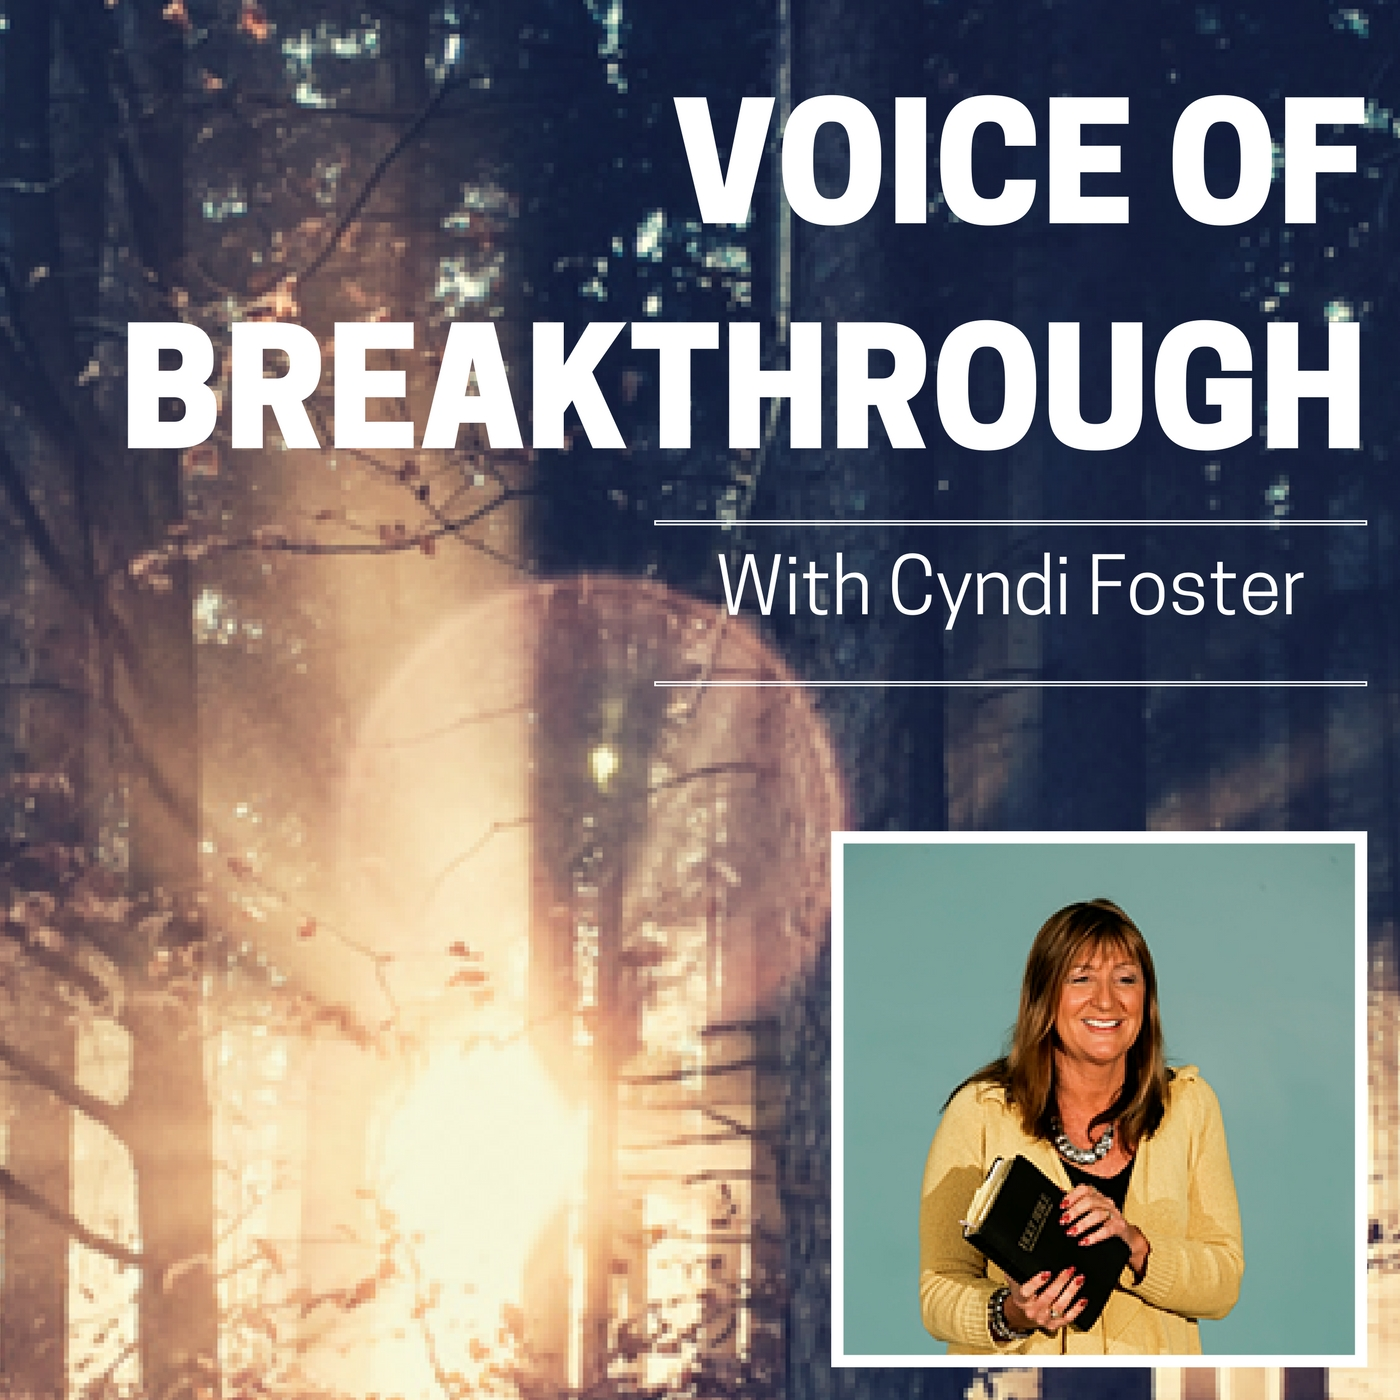 Voice of Breakthrough with Cyndi Foster